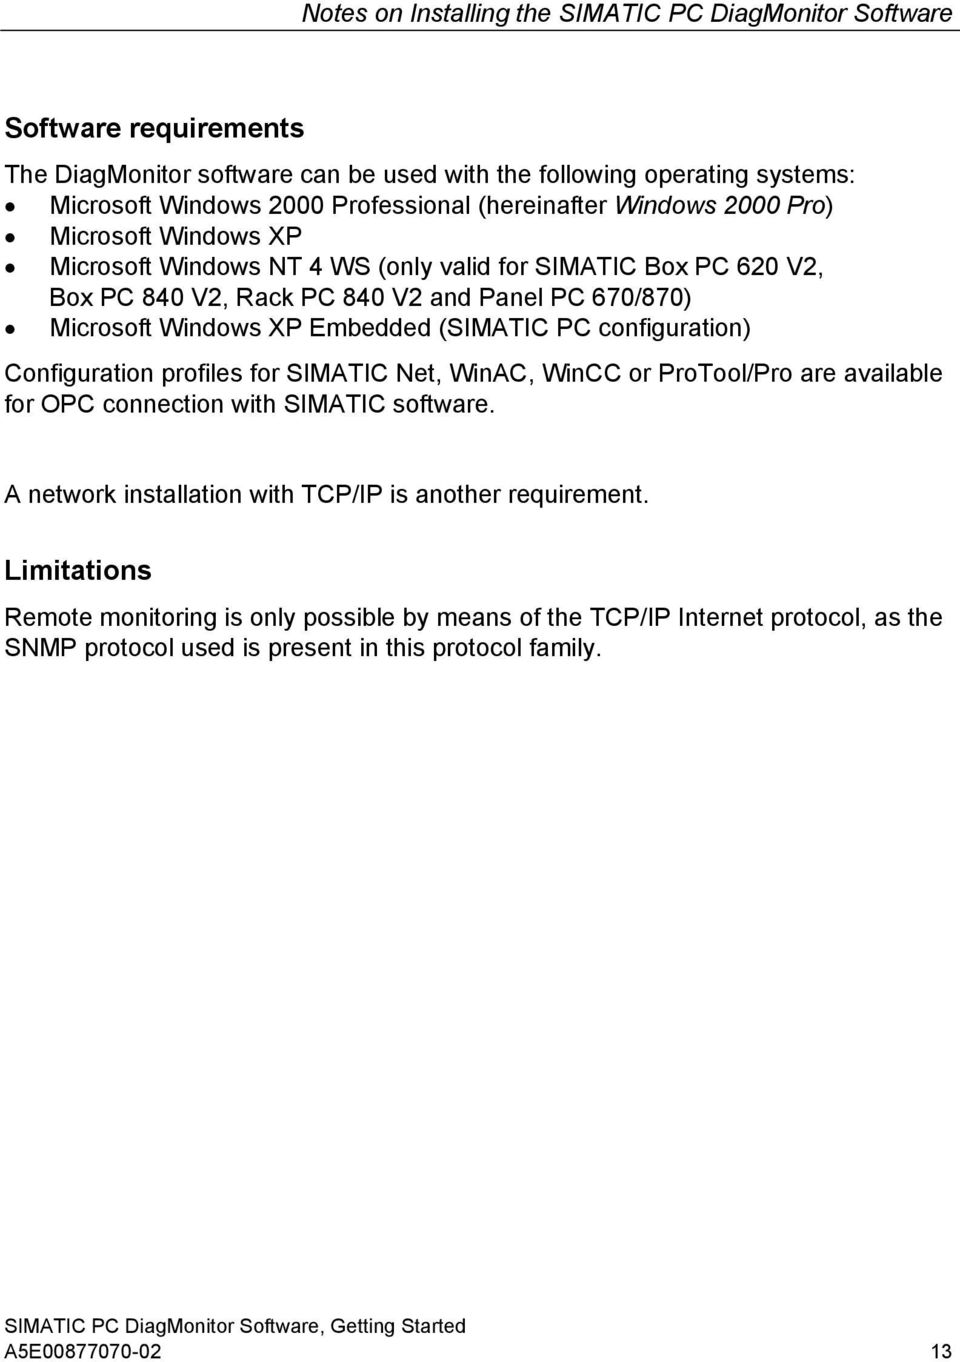 Embedded (SIMATIC PC configuration) Configuration profiles for SIMATIC Net, WinAC, WinCC or ProTool/Pro are available for OPC connection with SIMATIC software.